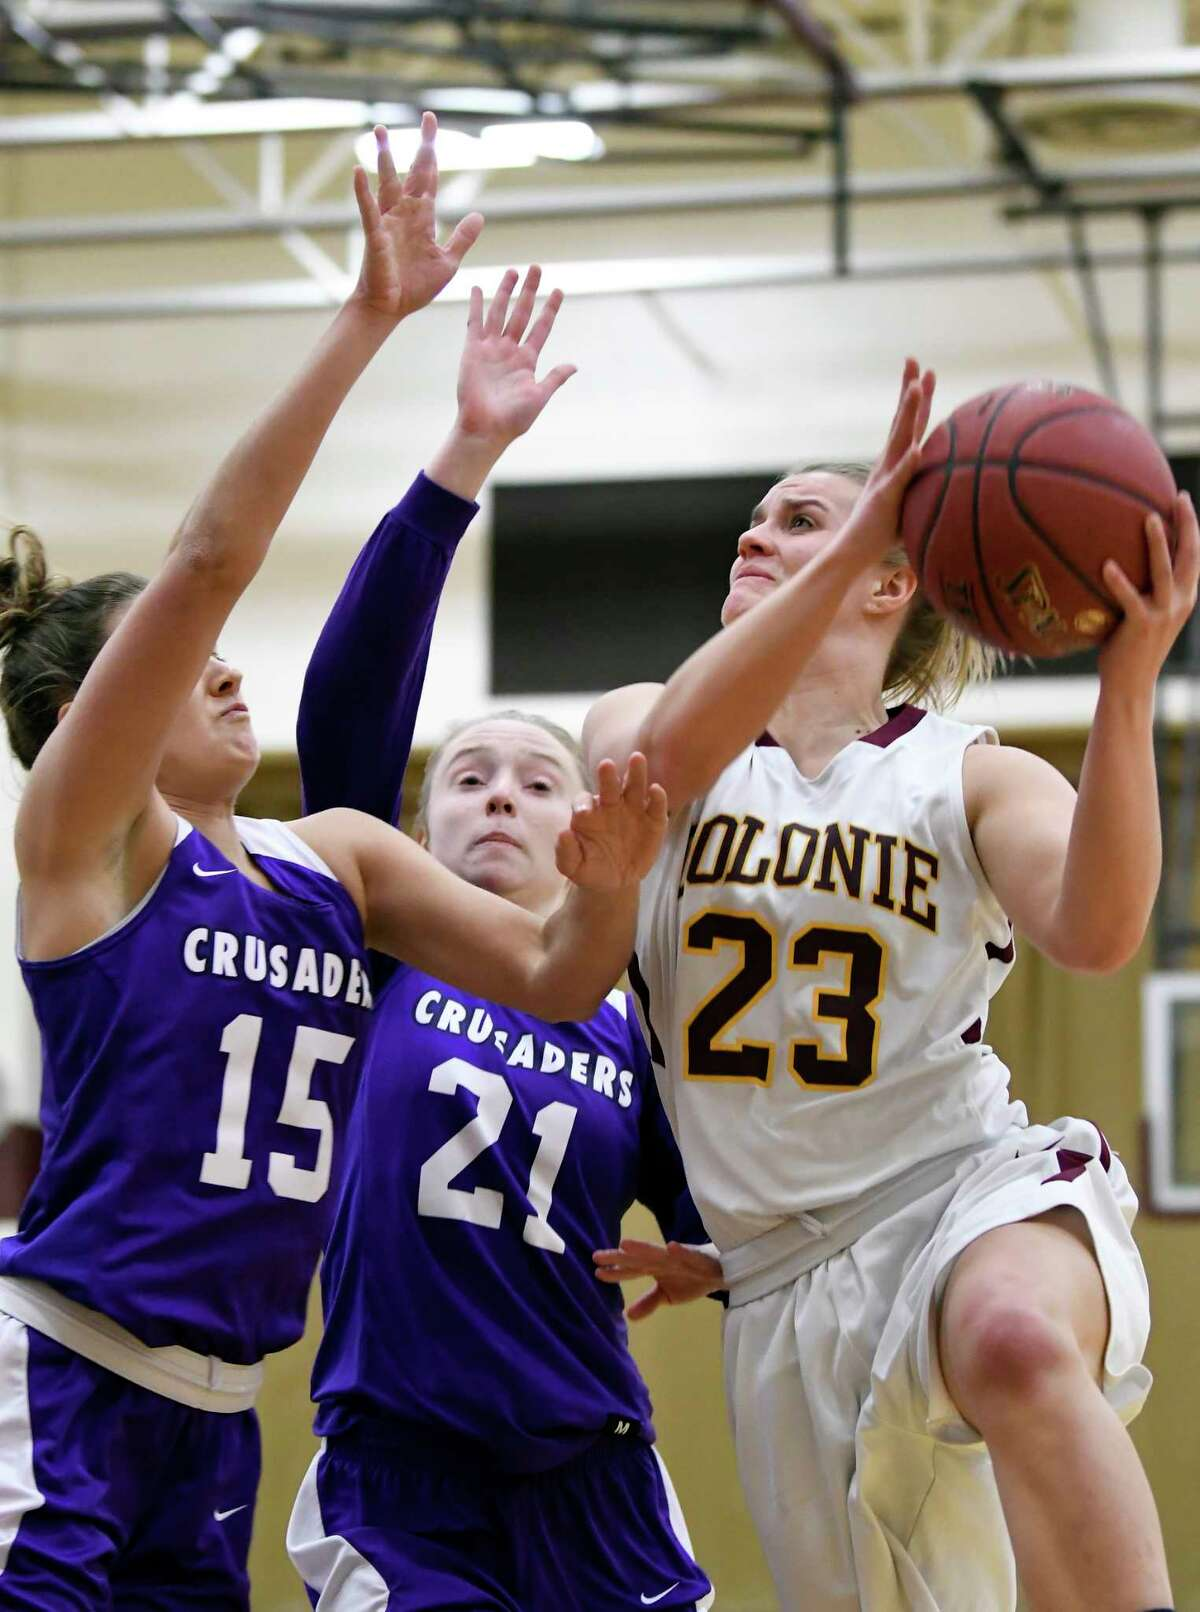 Catholic Central's Hannah Field (15) and Kay Valley (21) defend against Colonie's Erin Fouracre (23) during a girls high school basketball game on Wednesday, Dec. 27, 2017, in Colonie, N.Y. (Hans Pennink / Special to the Times Union)